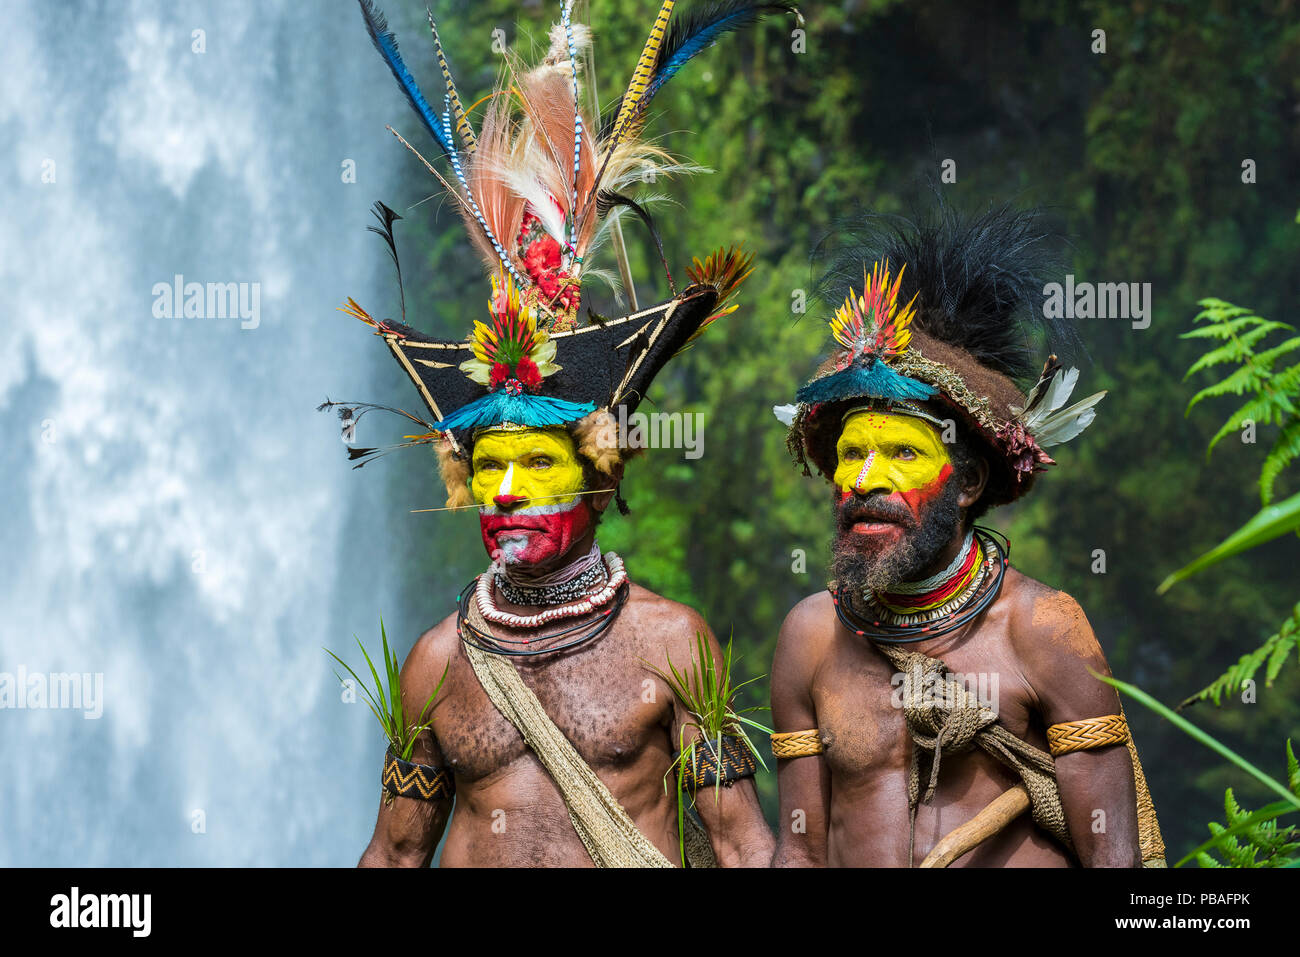 Huli Wigmen (chief Timon Tumbu and Haro Ngibe) in traditional / ceremonial dress with plumes of Birds of Paradise, dwarf cassowary, parrots and lorikeets. Tari Valley, Papua New Guinea. June 2016. - Stock Image